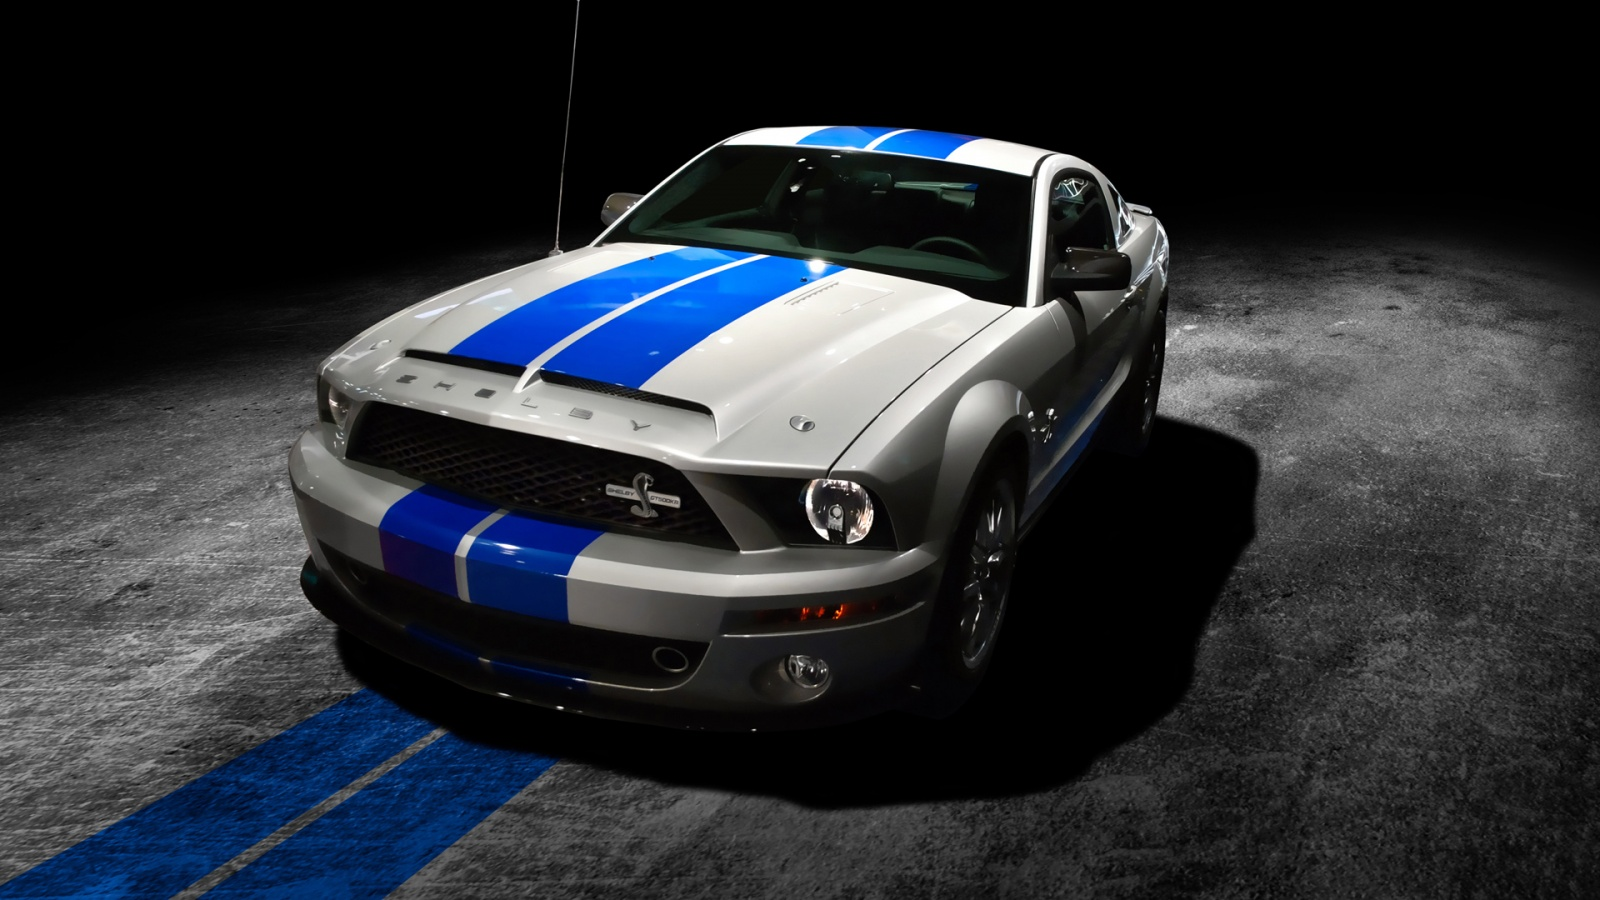 Hd Wallpapers For Desk1600x900 Grey Mustang Blue Stripes 1554546 Hd Wallpaper Backgrounds Download